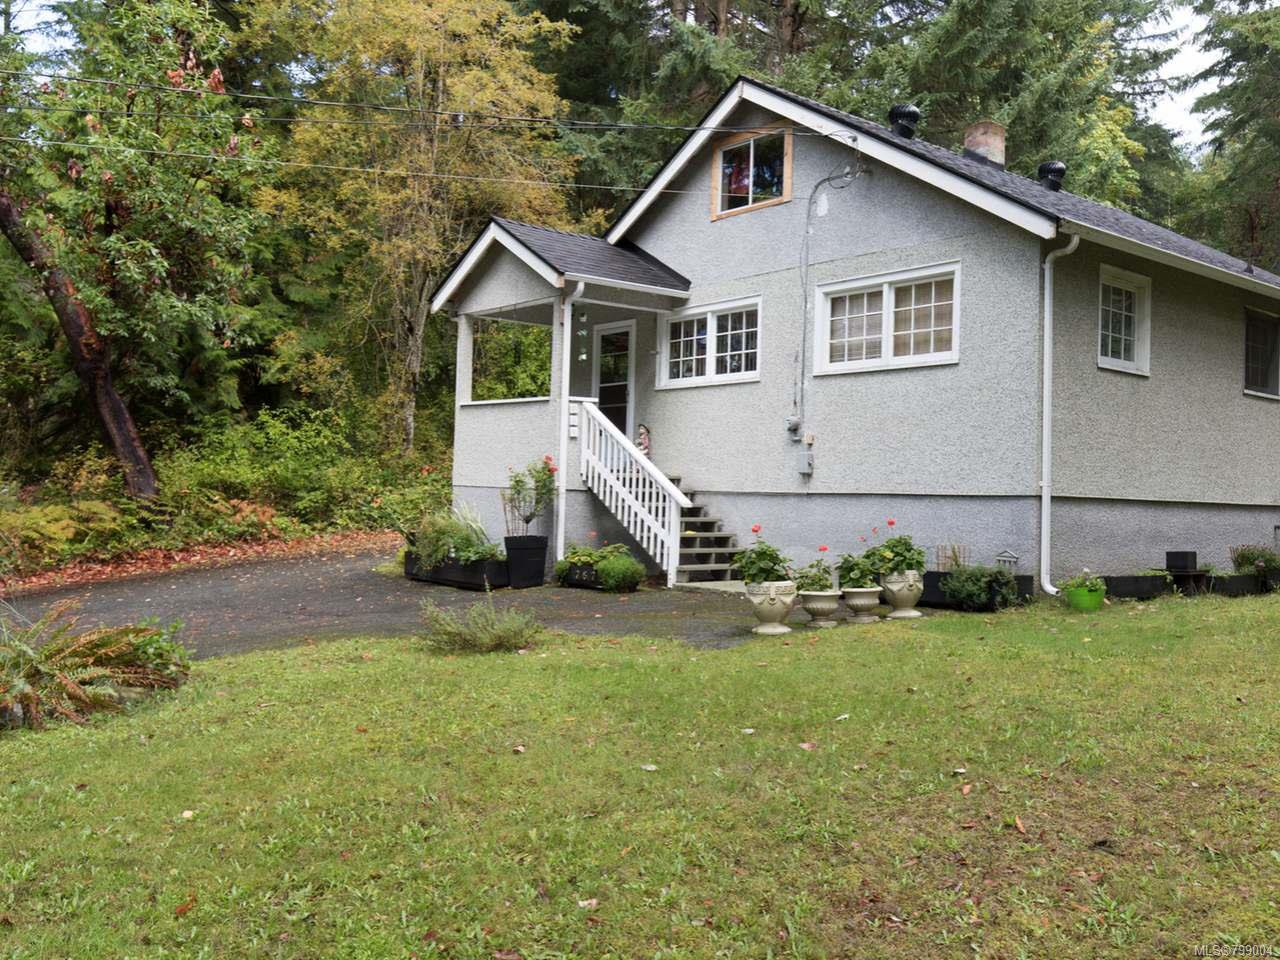 Main Photo: 2625 Northwest Bay Rd in NANOOSE BAY: PQ Nanoose House for sale (Parksville/Qualicum)  : MLS®# 799004